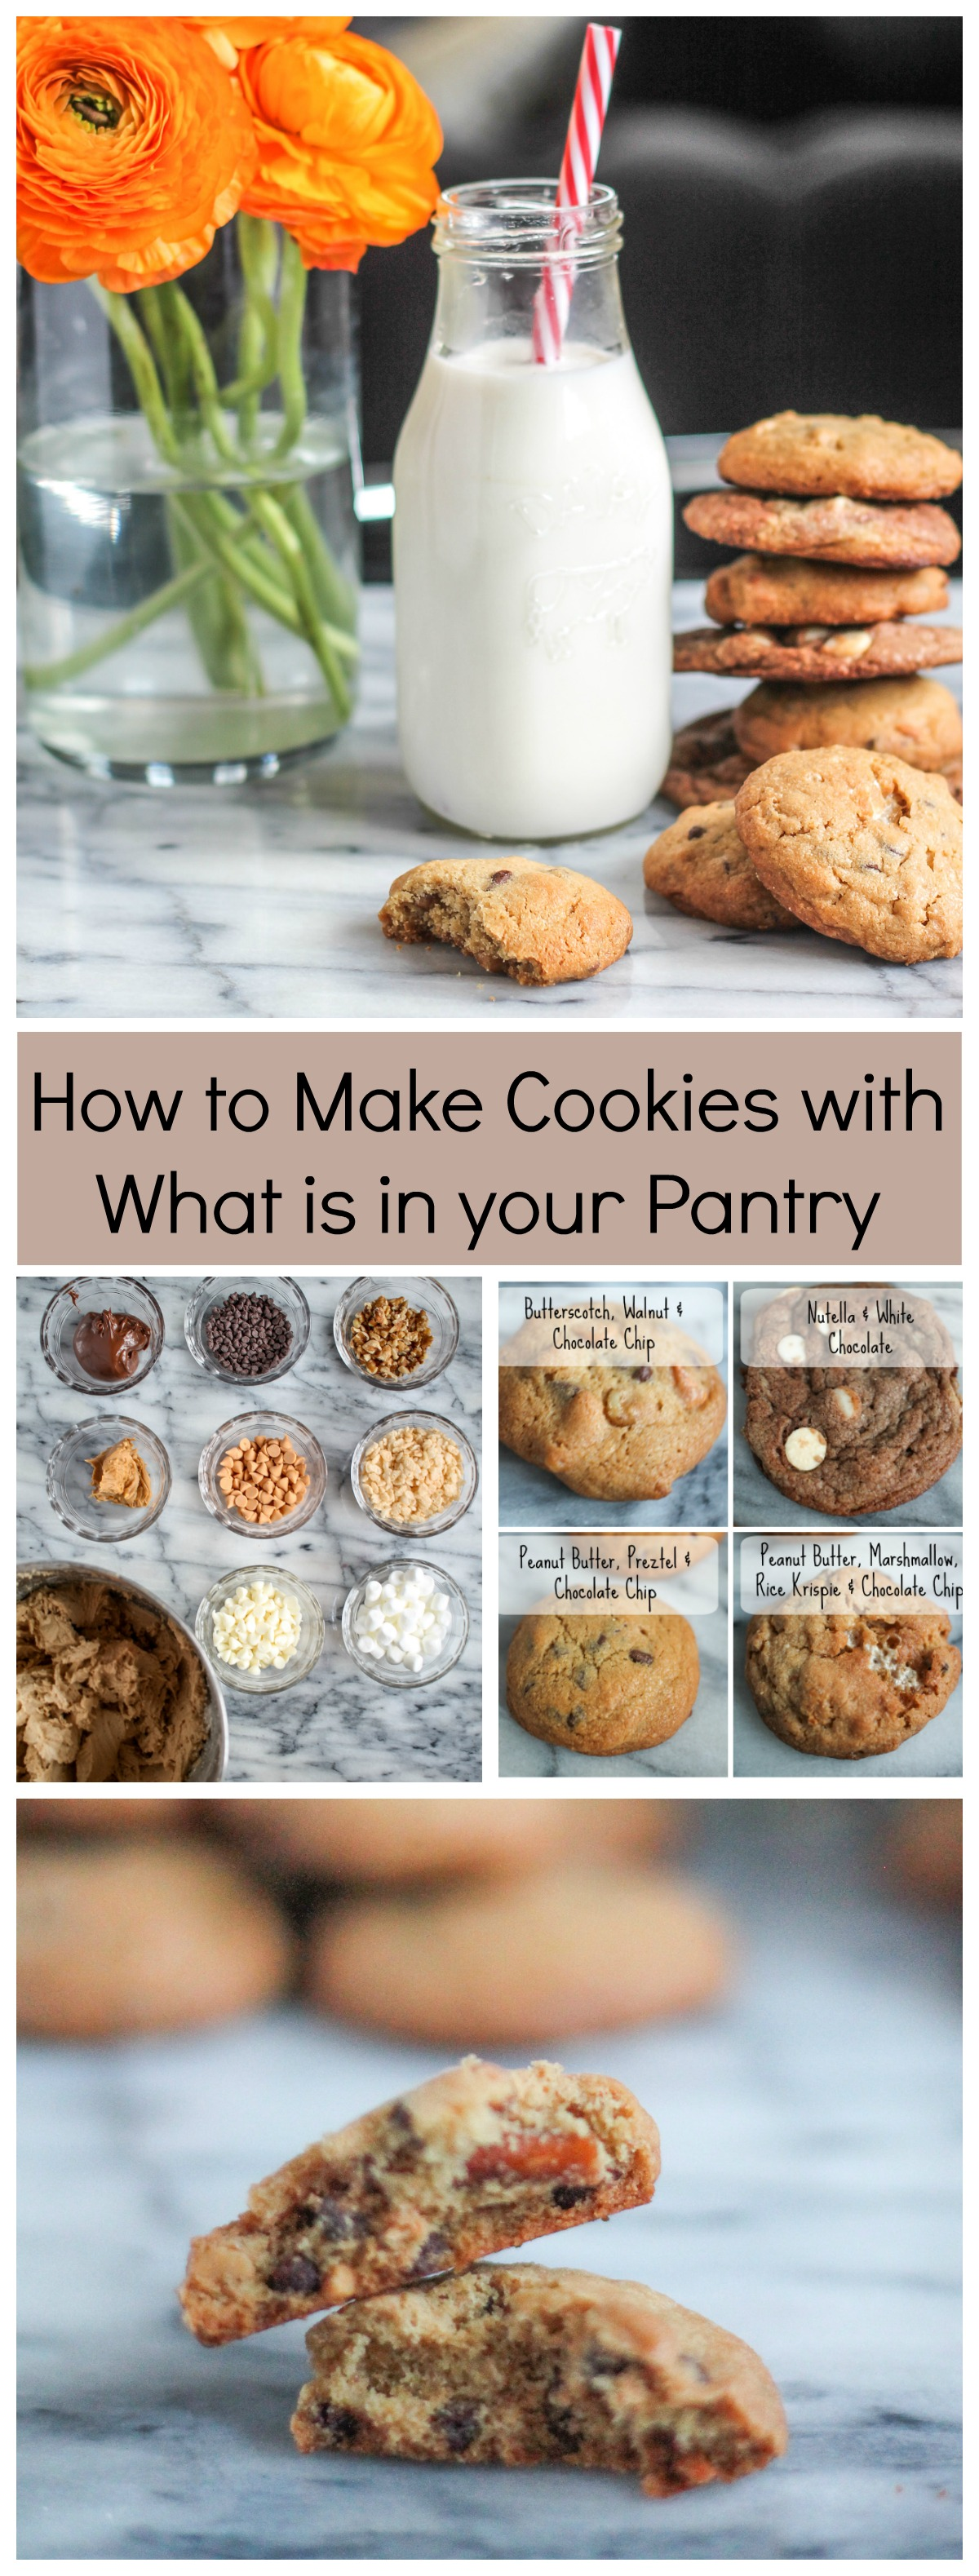 Crazy Cookies – How to Make Cookies with what is in your Pantry